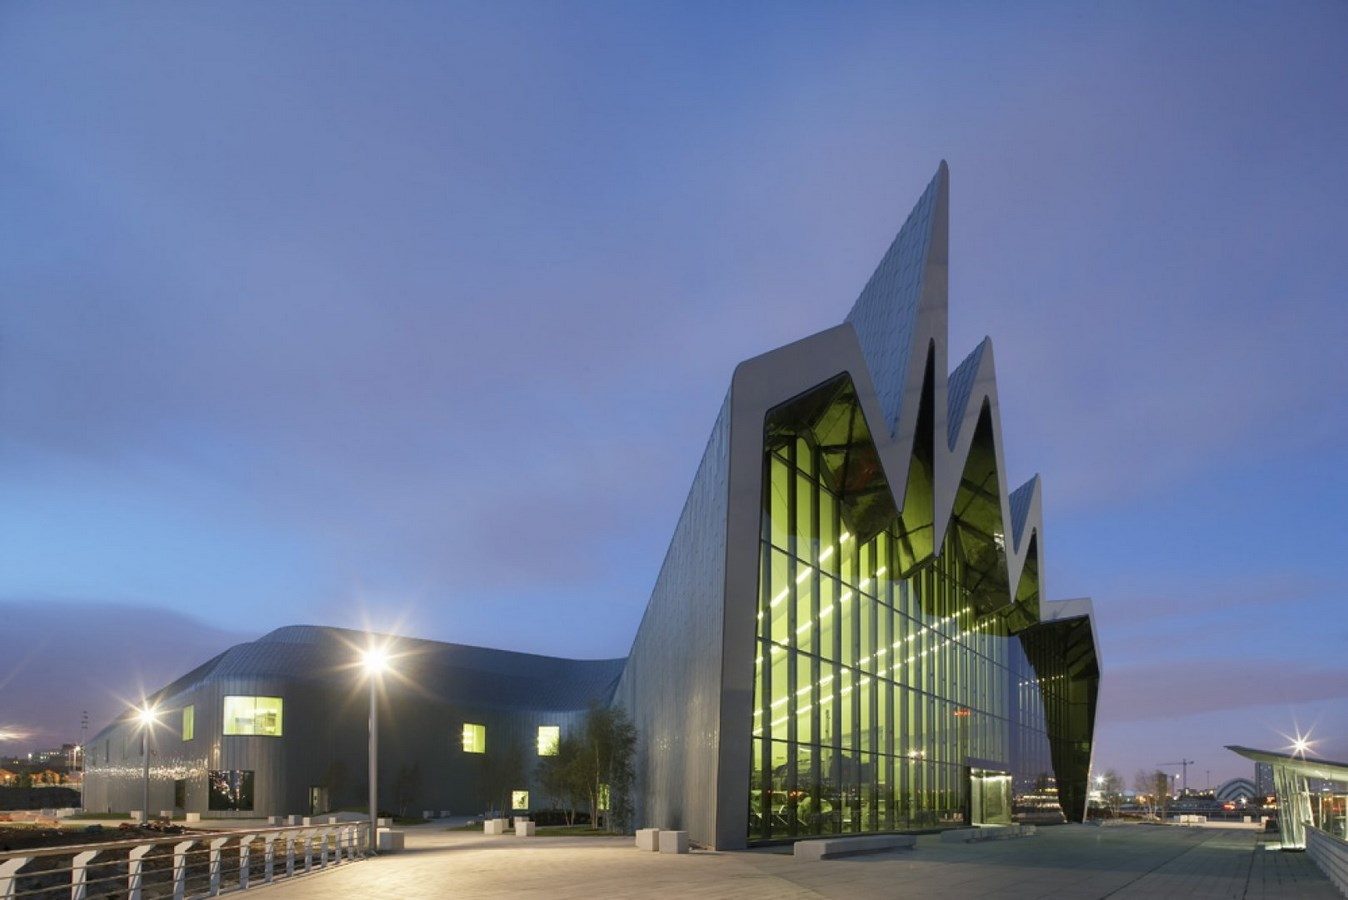 30 Projects That Define Zaha Hadid's Style - Glasgow Riverside Museum of Transport